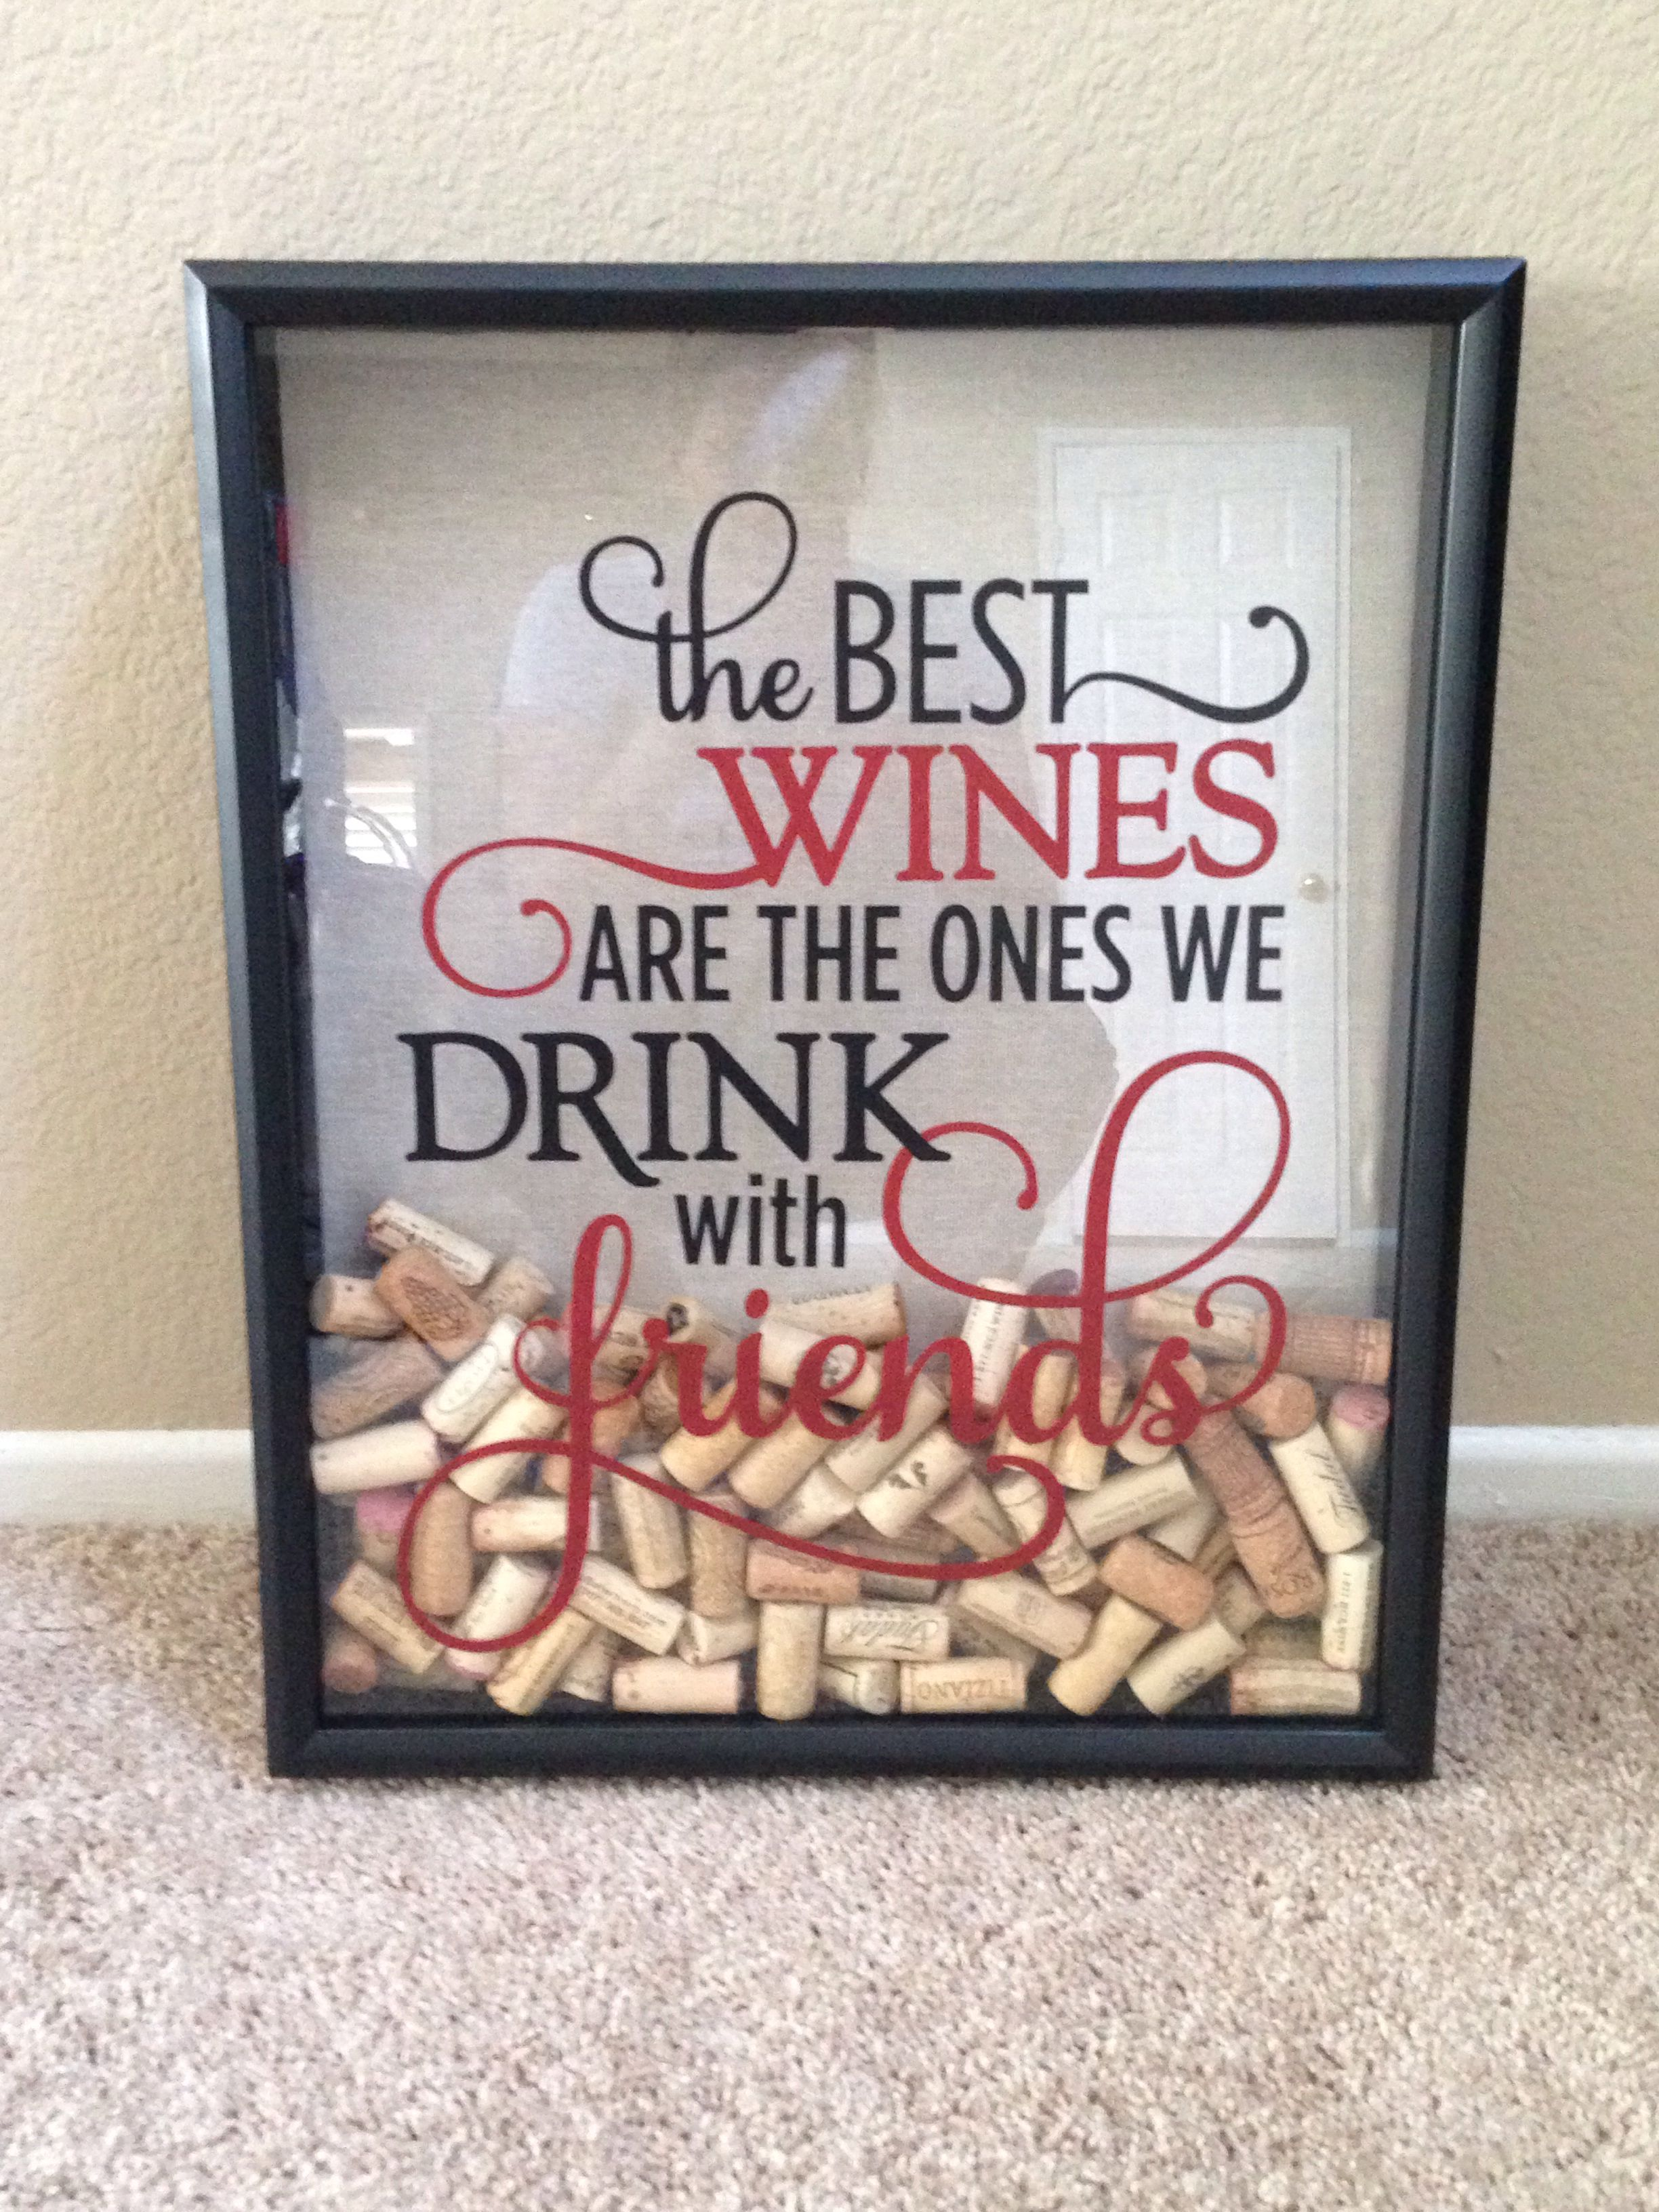 Wine cork shadow box | My completed Pinterest ideas | Pinterest ...